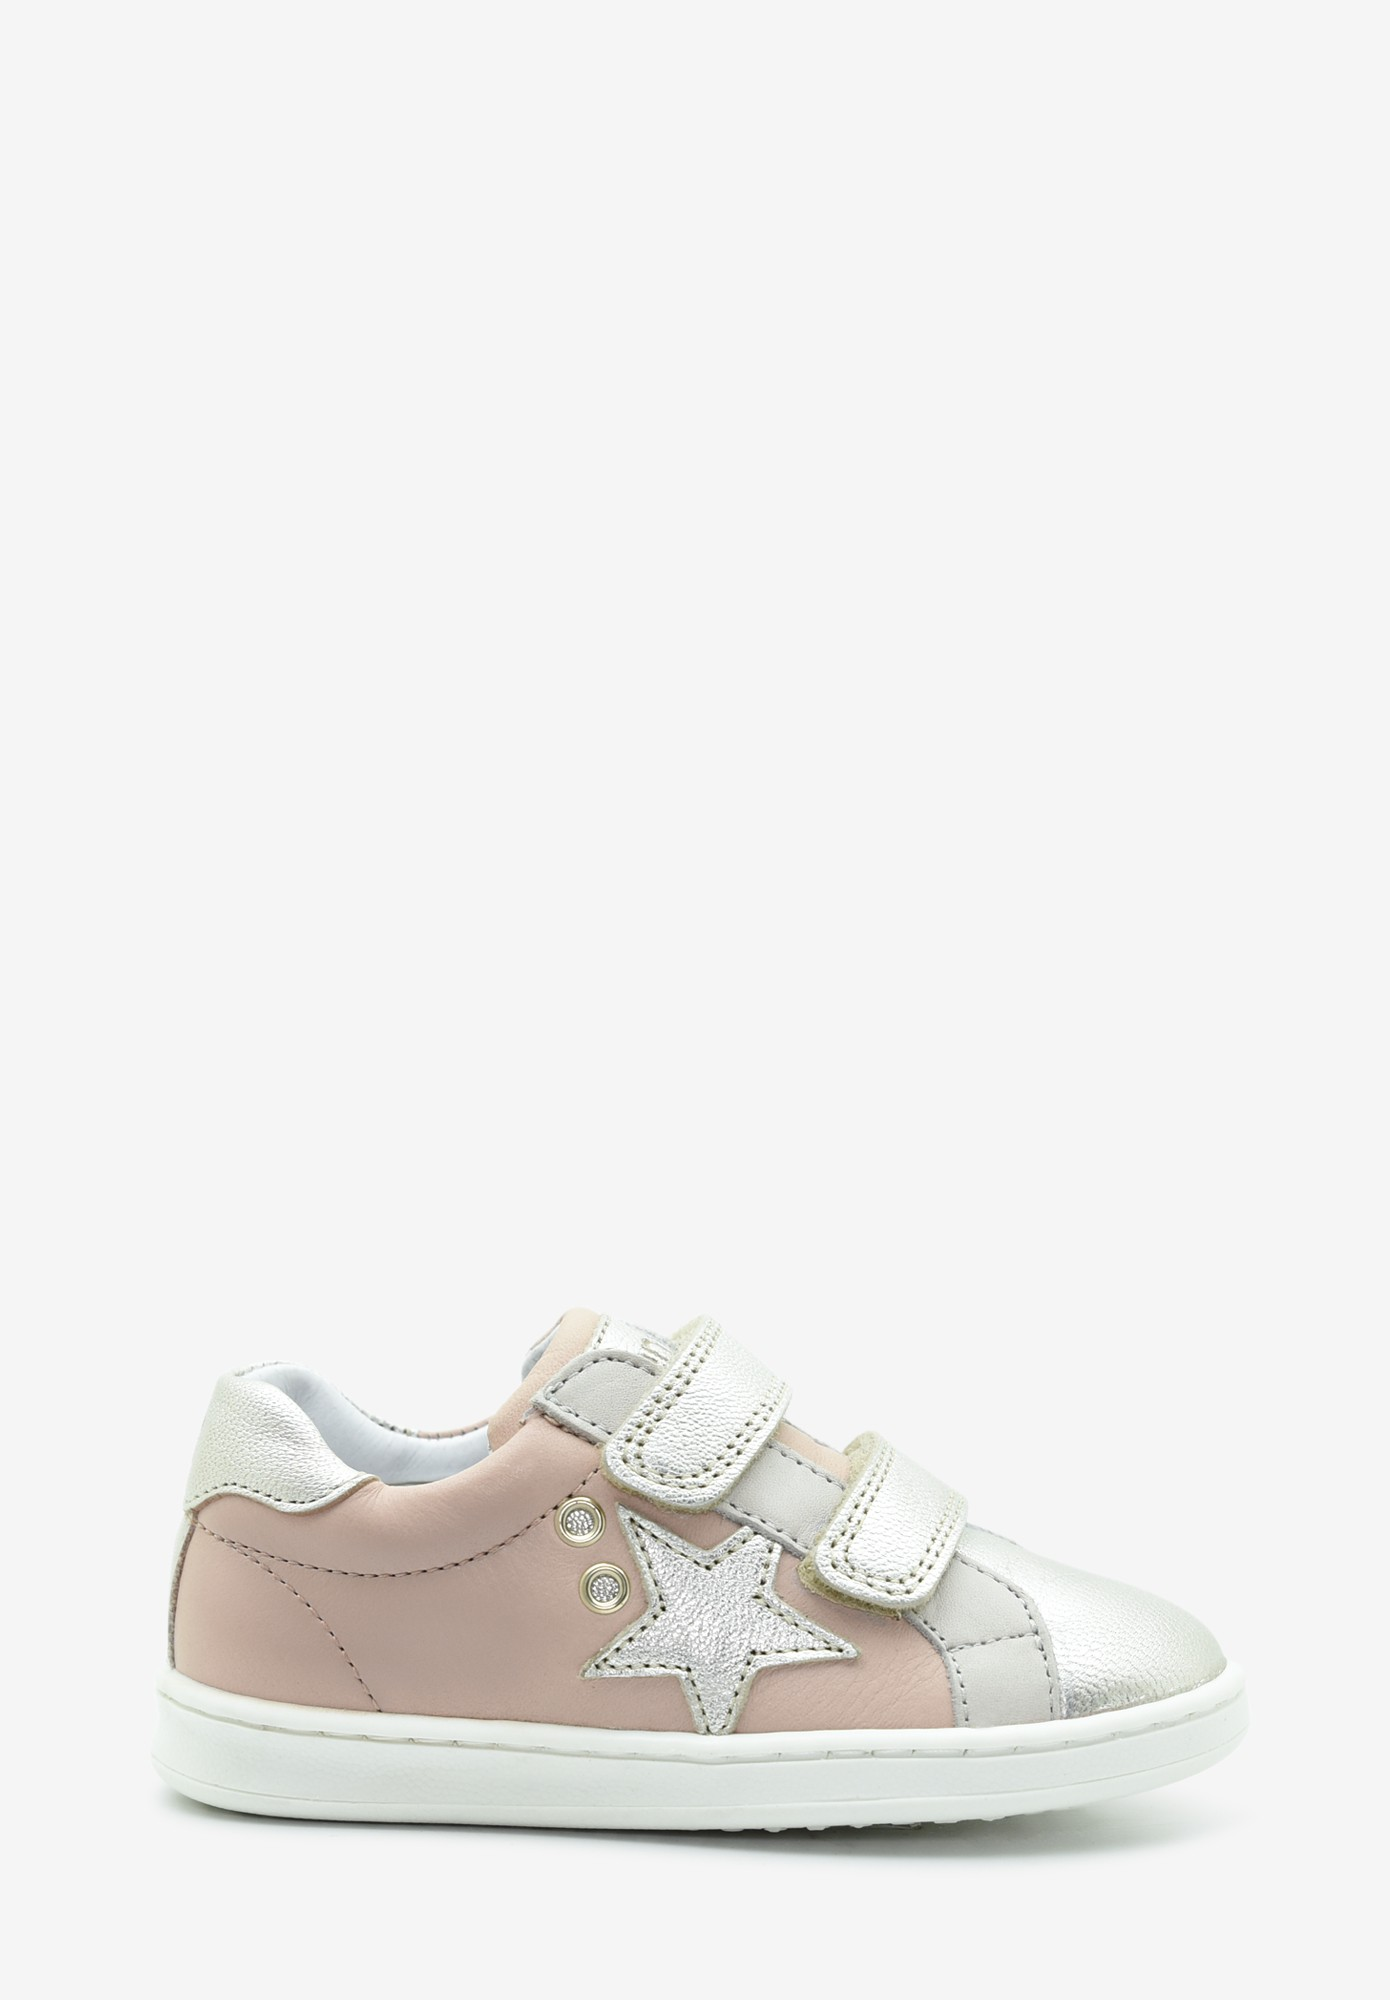 Toddler Girl Leather Sneakers